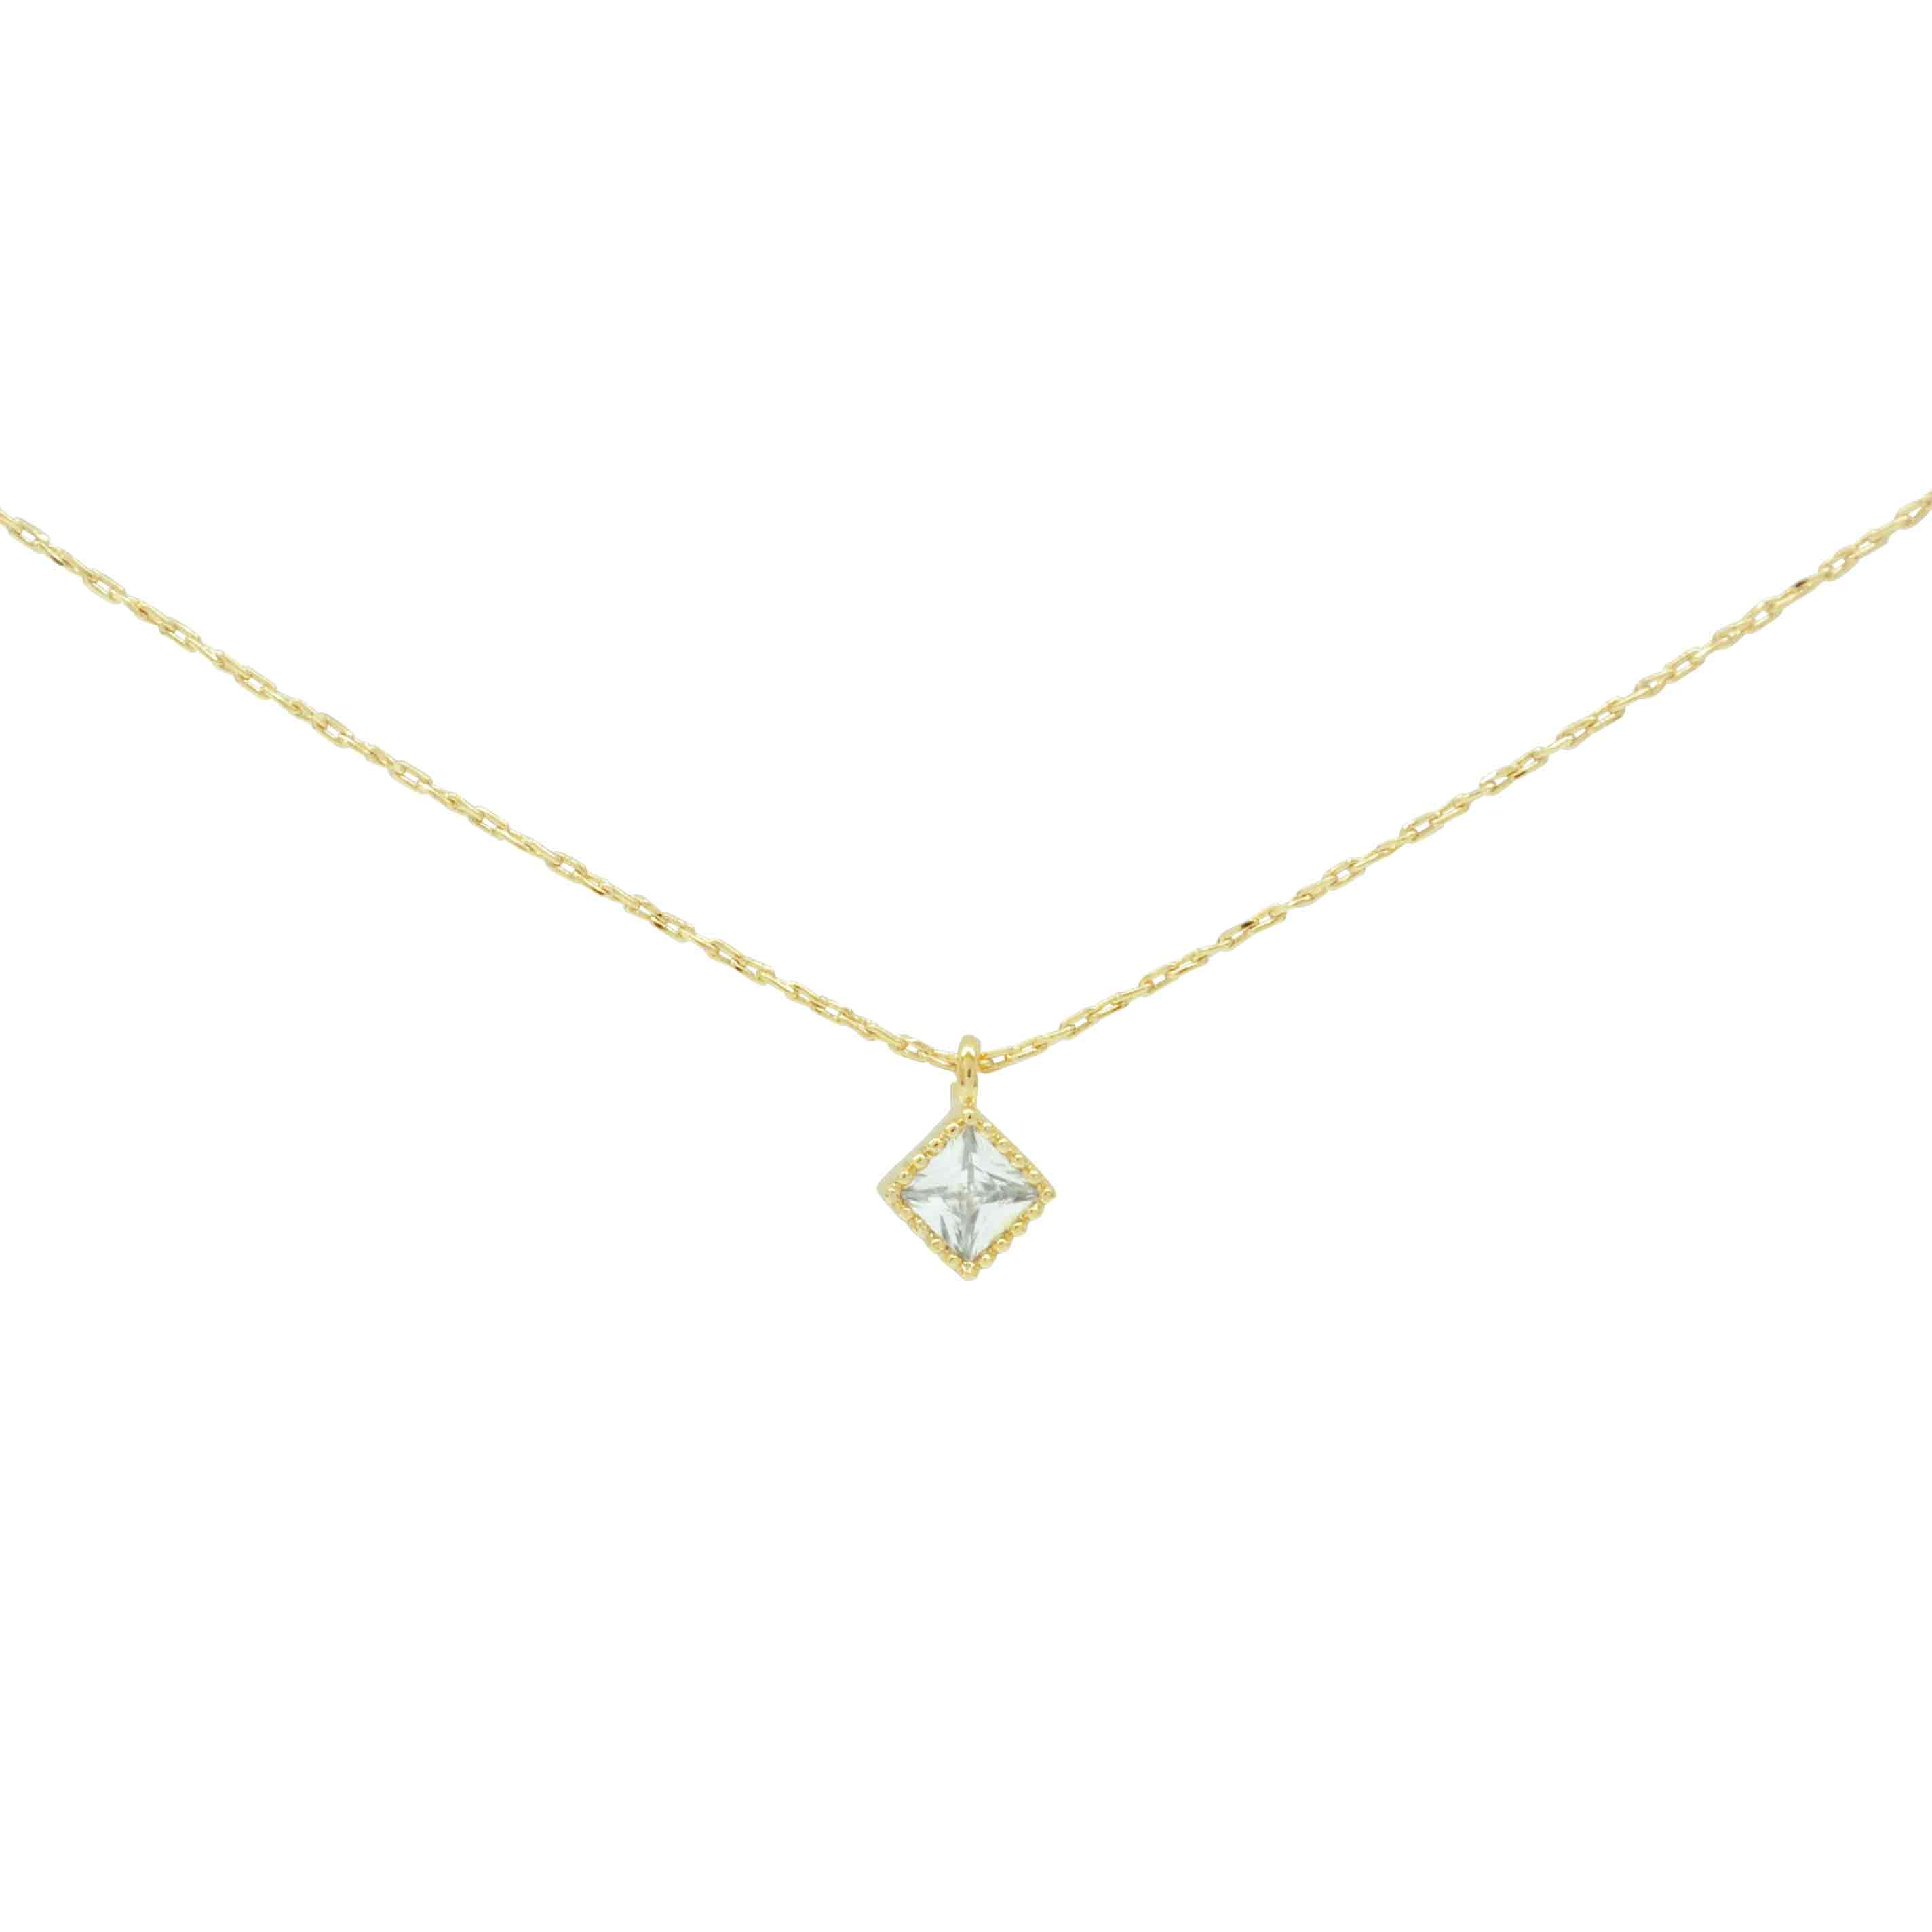 NECKLACE-n1500s008画像